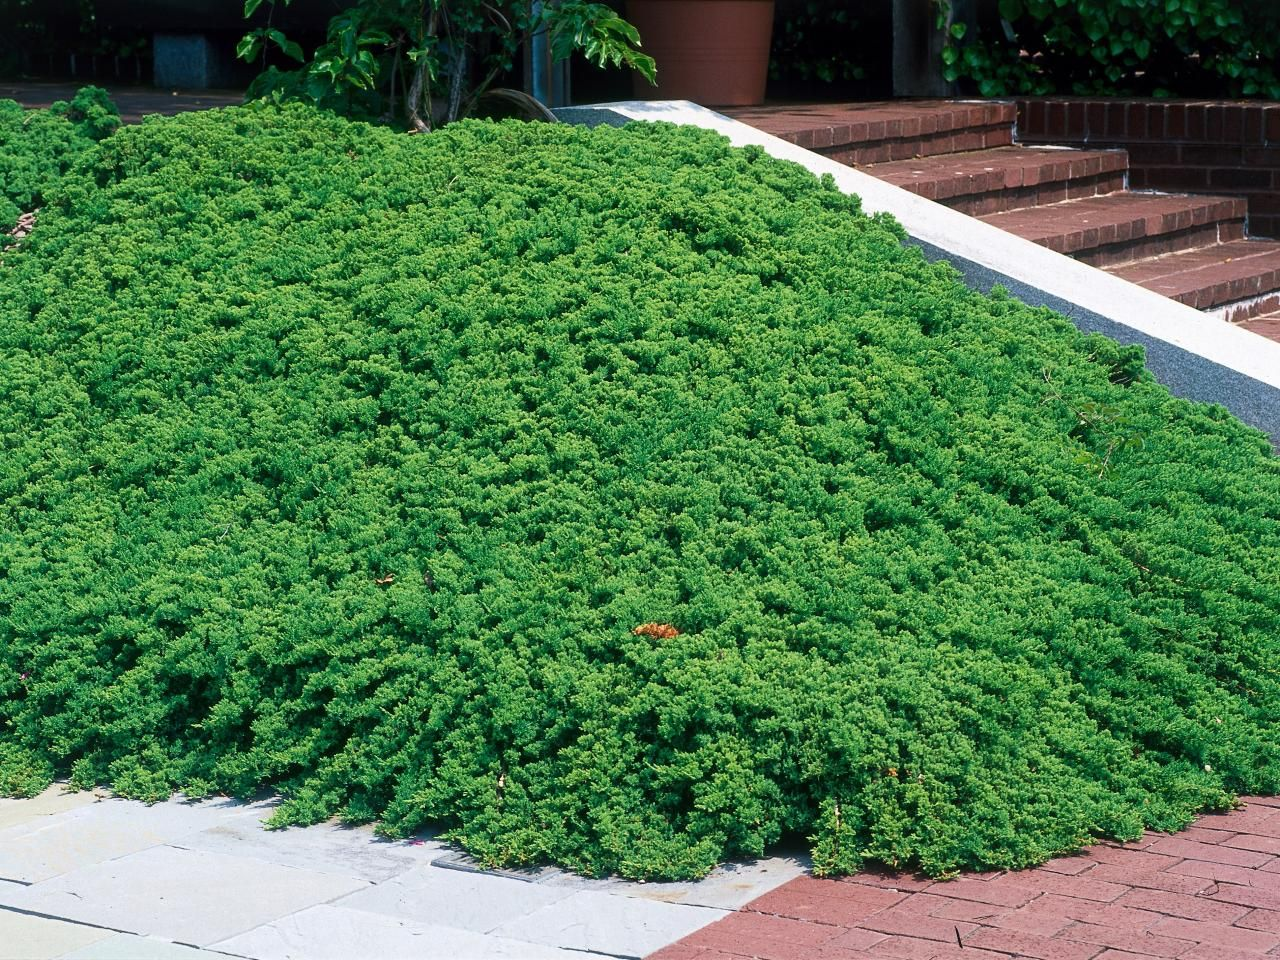 Gold lace juniper juniperus chinensis gold lace plants gold lace juniper juniperus chinensis gold lace plants trees pinterest gold lace buy plants online and buy plants reviewsmspy